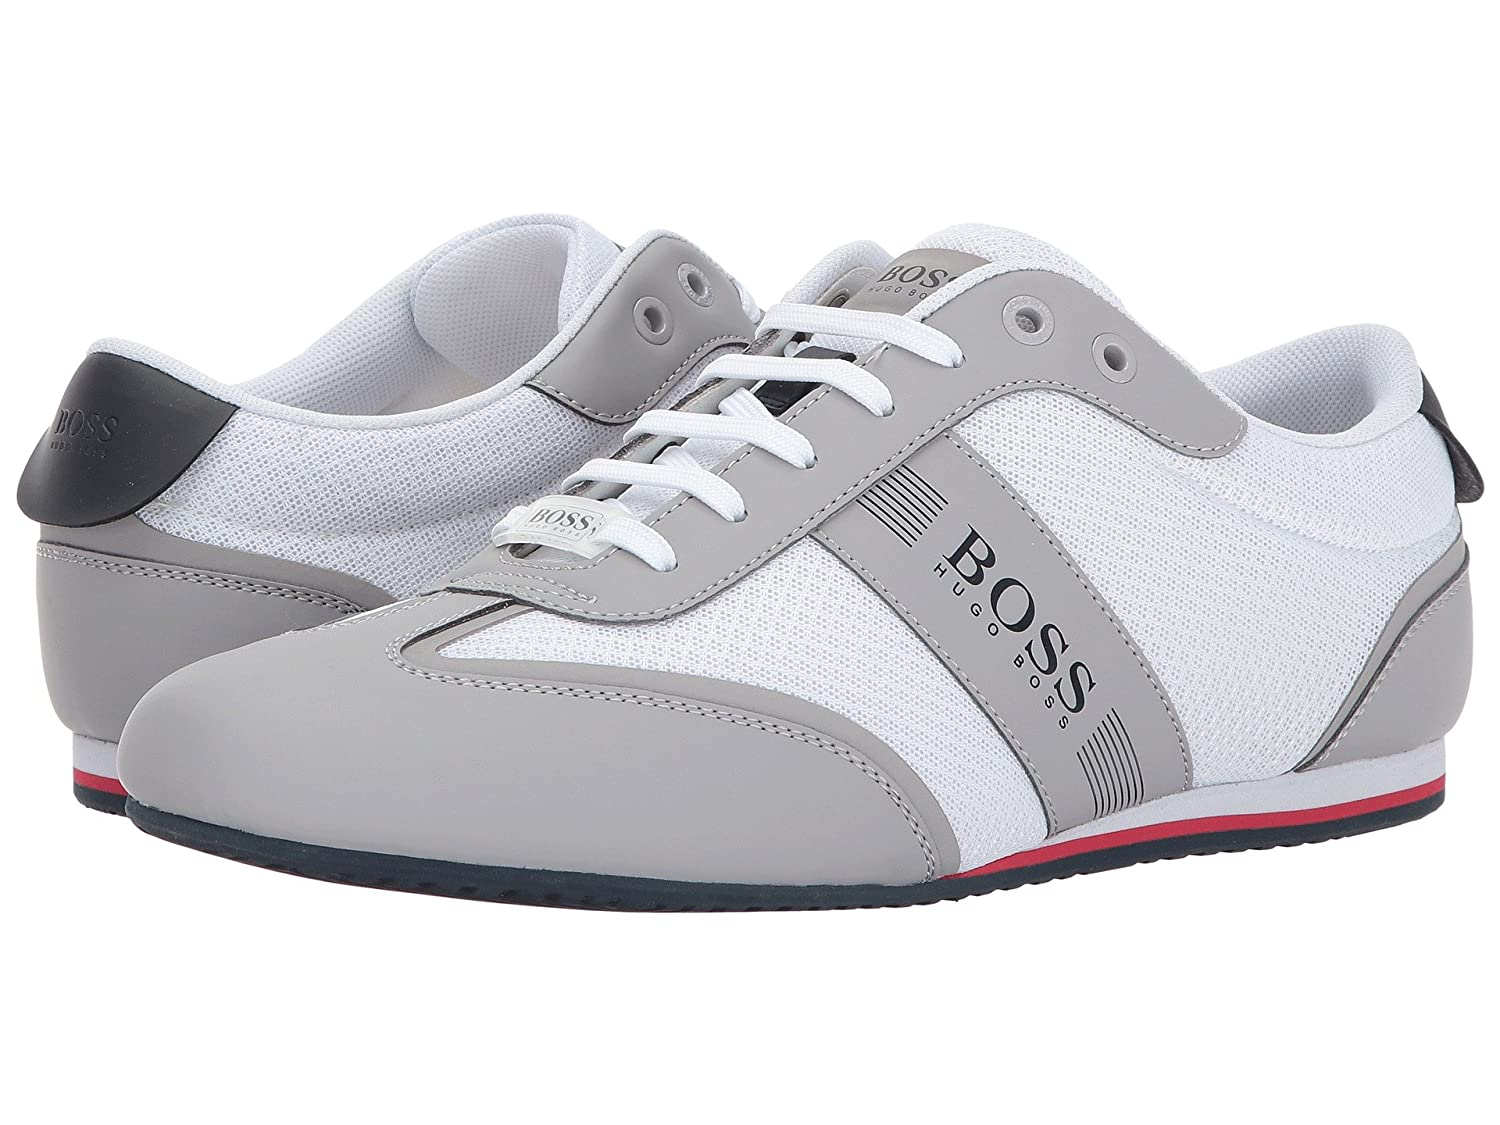 [ヒューゴボス] BOSS Hugo Boss メンズ Lighter Low Mesh Sneaker by BOSS Green スニーカー [並行輸入品] B074FWZD3N